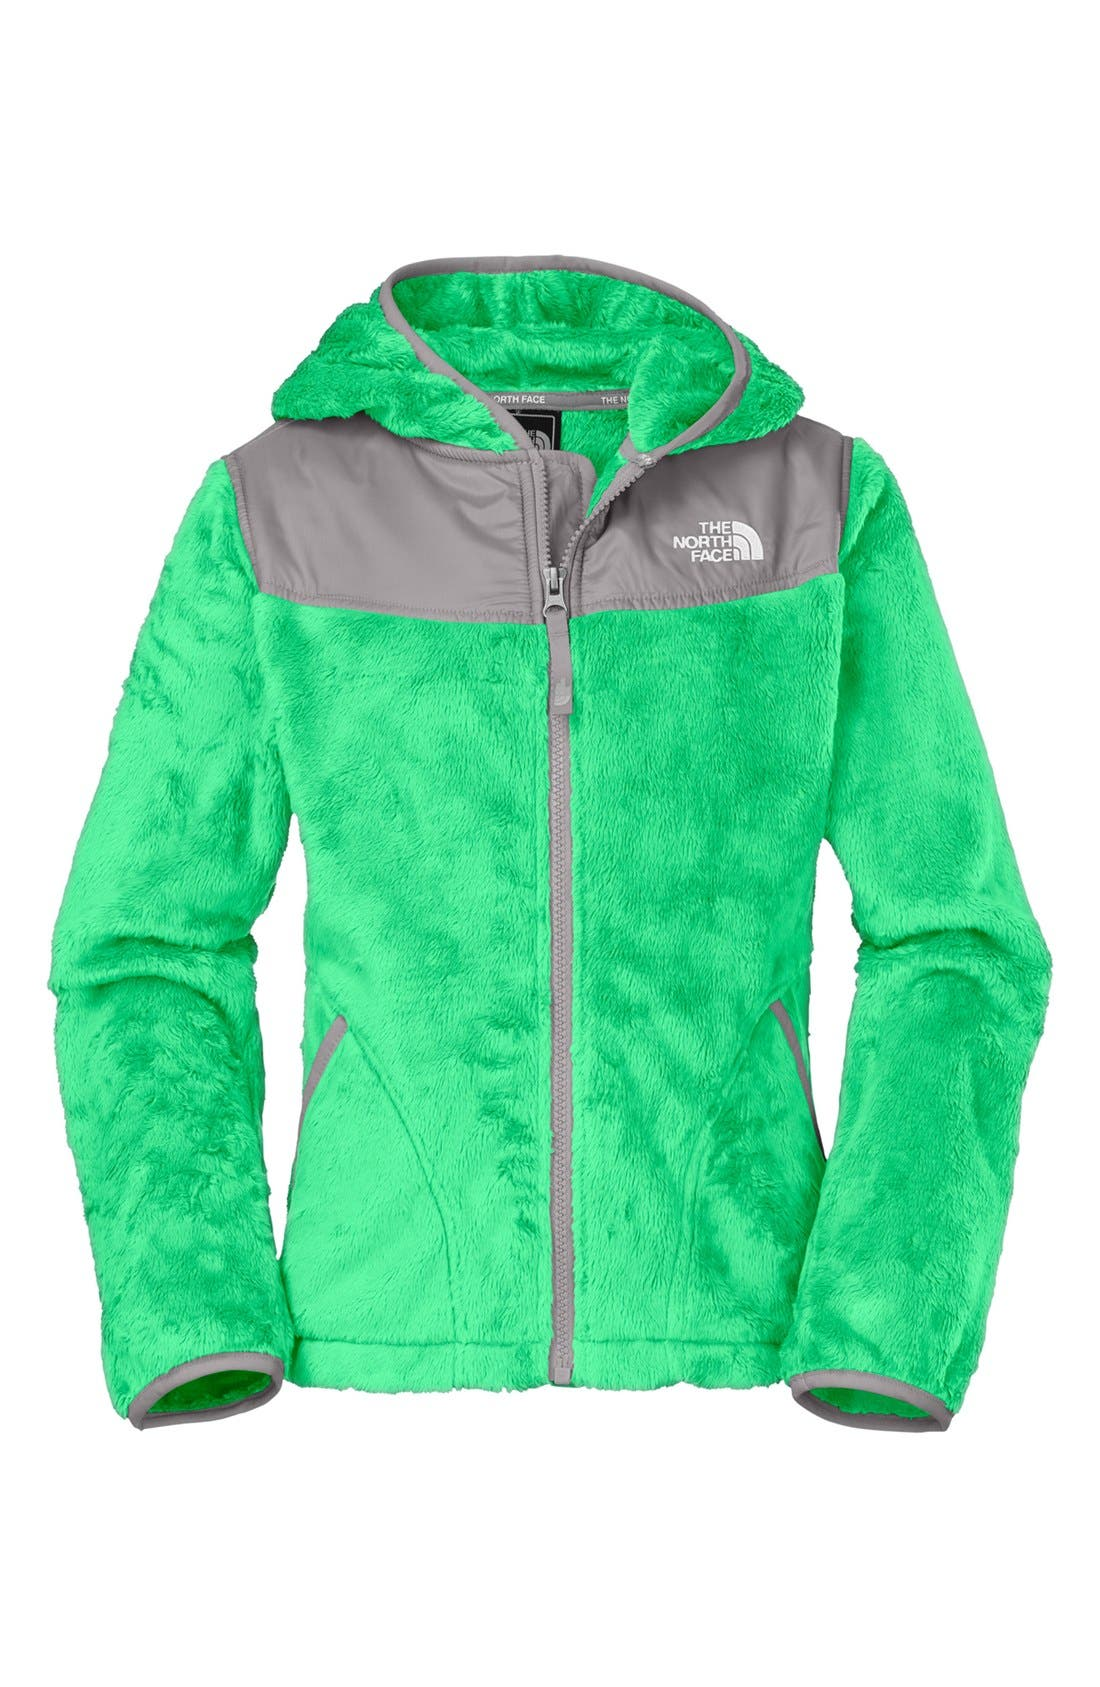 Main Image - The North Face 'Oso' Hooded Fleece Jacket (Little Girls & Big Girls)